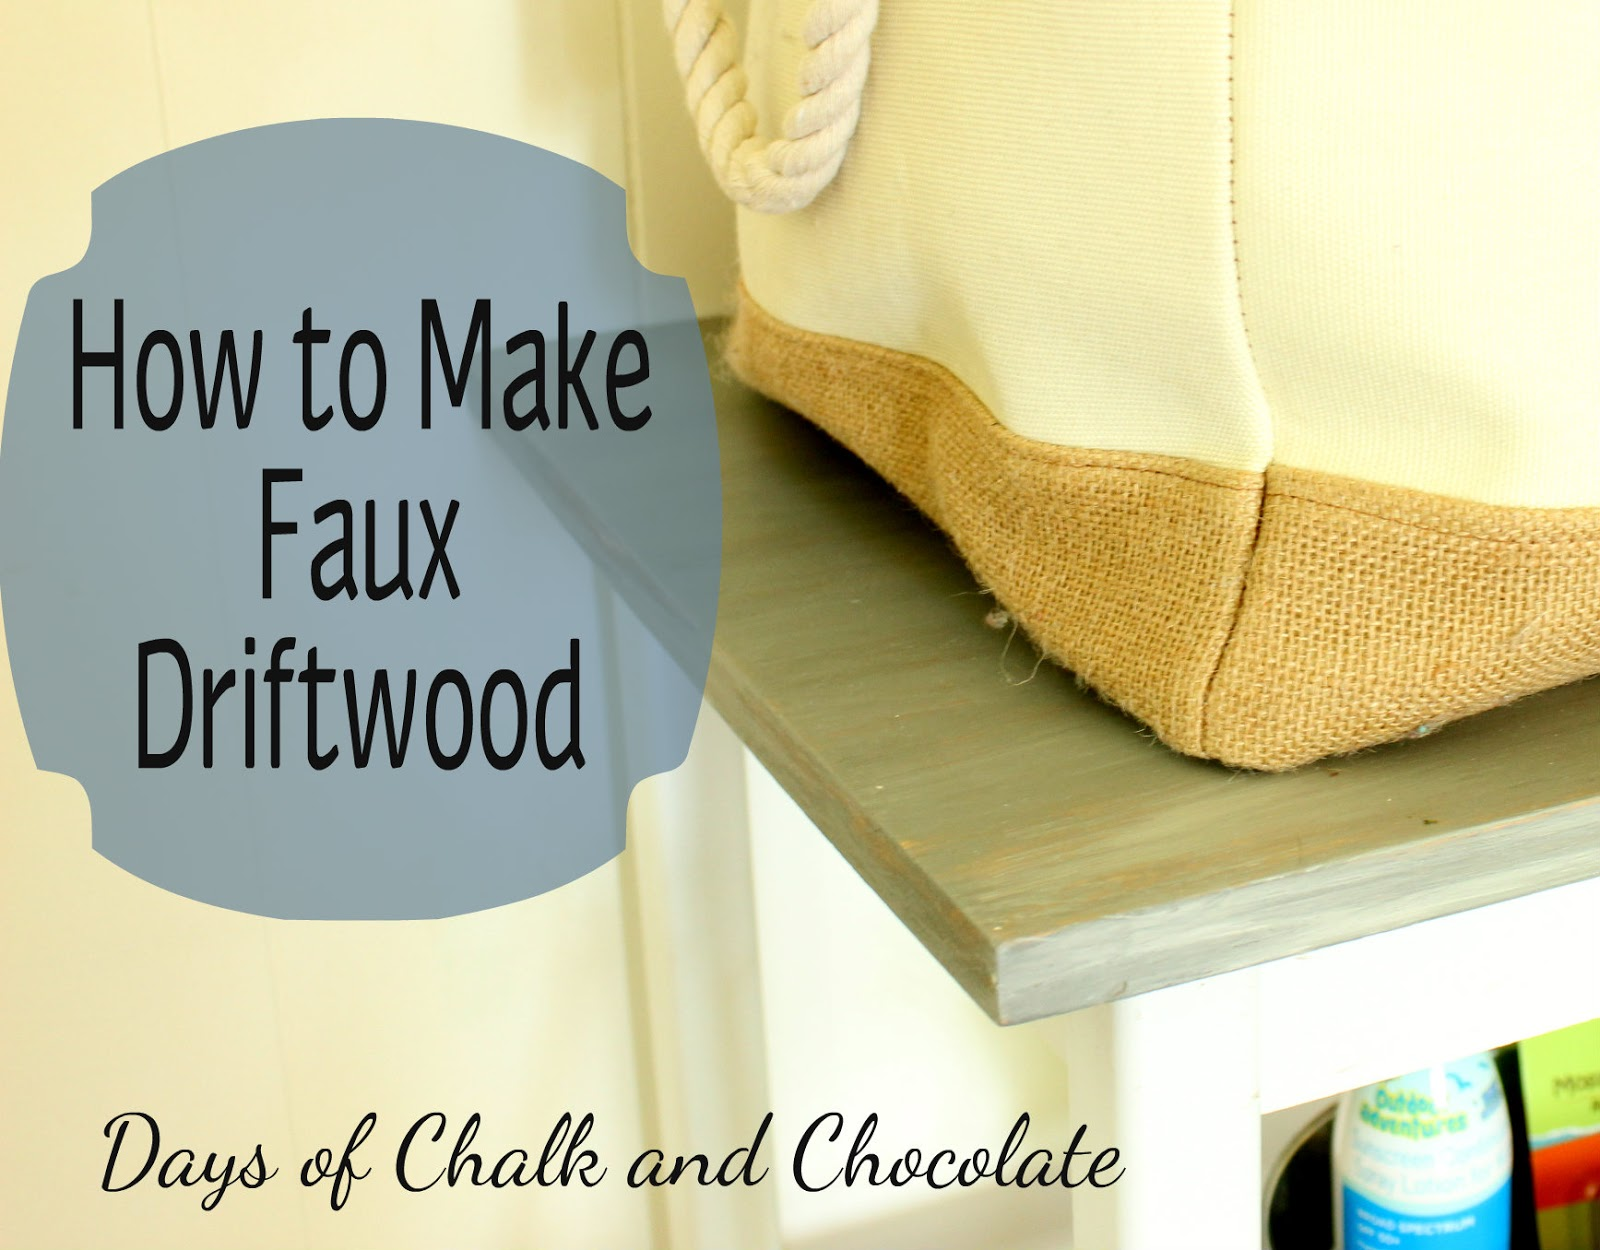 How to make faux driftwood days of chalk and chocolate for How to make driftwood crafts